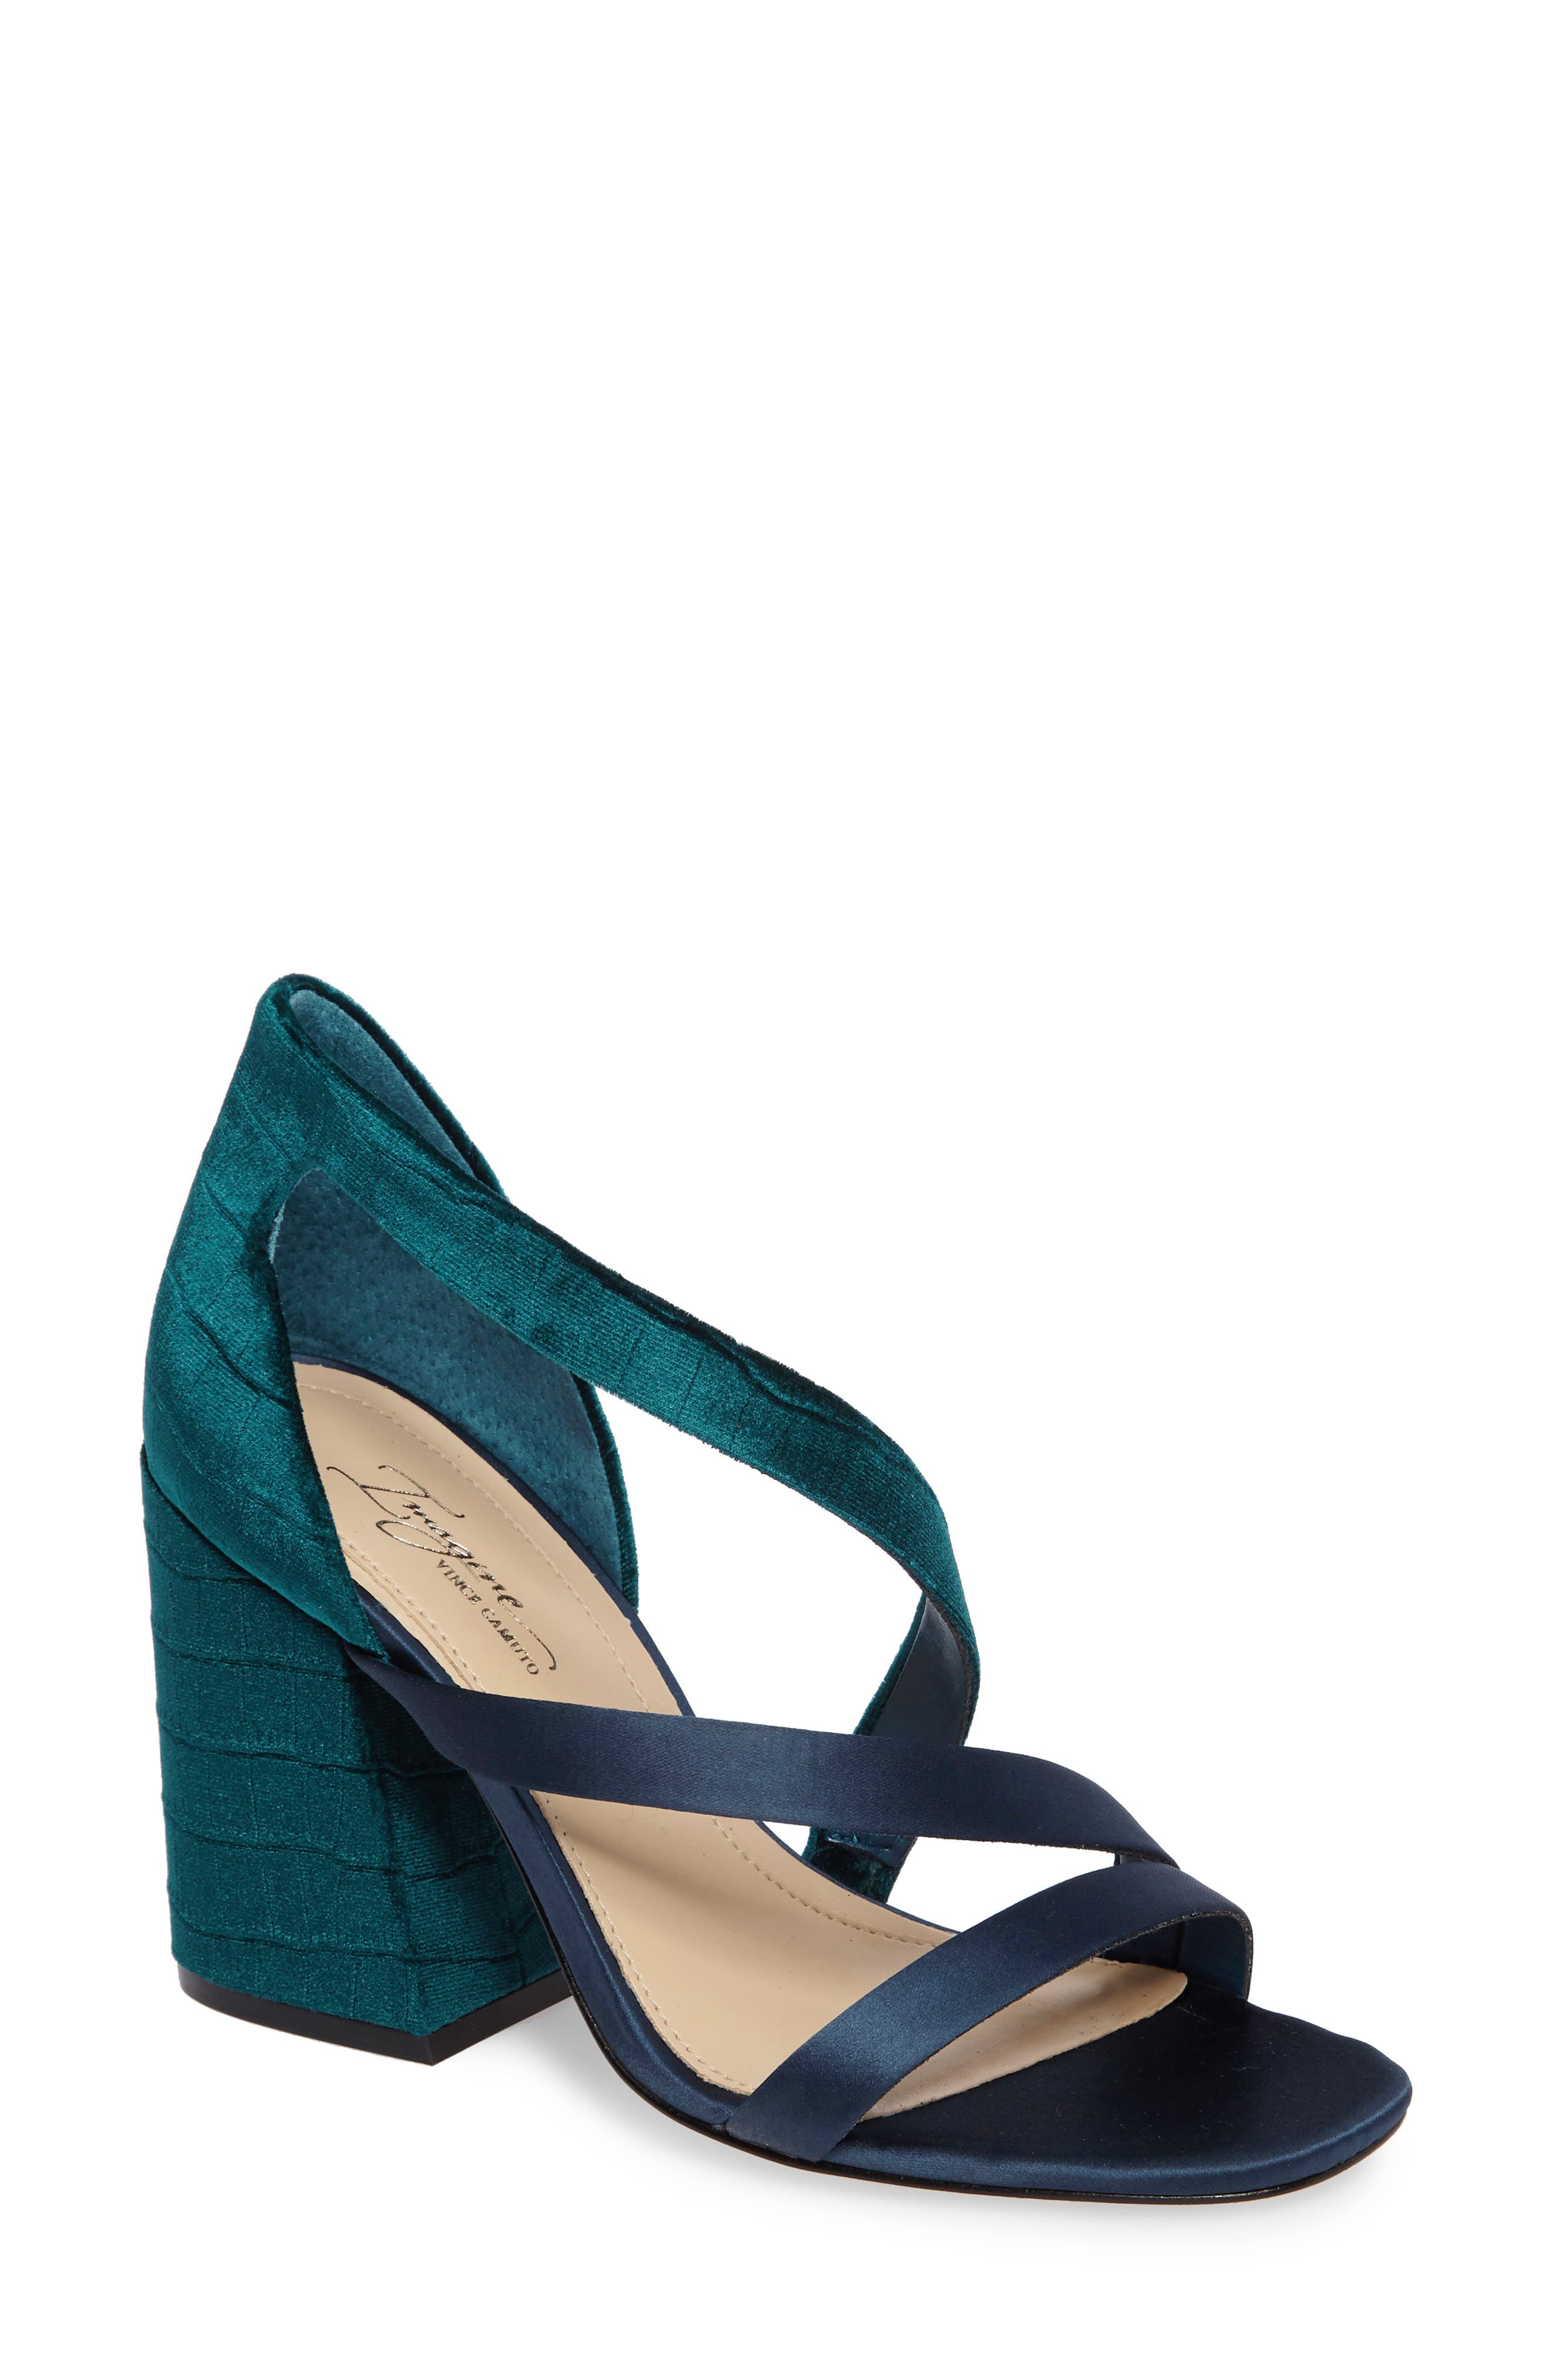 Main Image - Imagine by Vince Camuto Abi Sandal (Women)